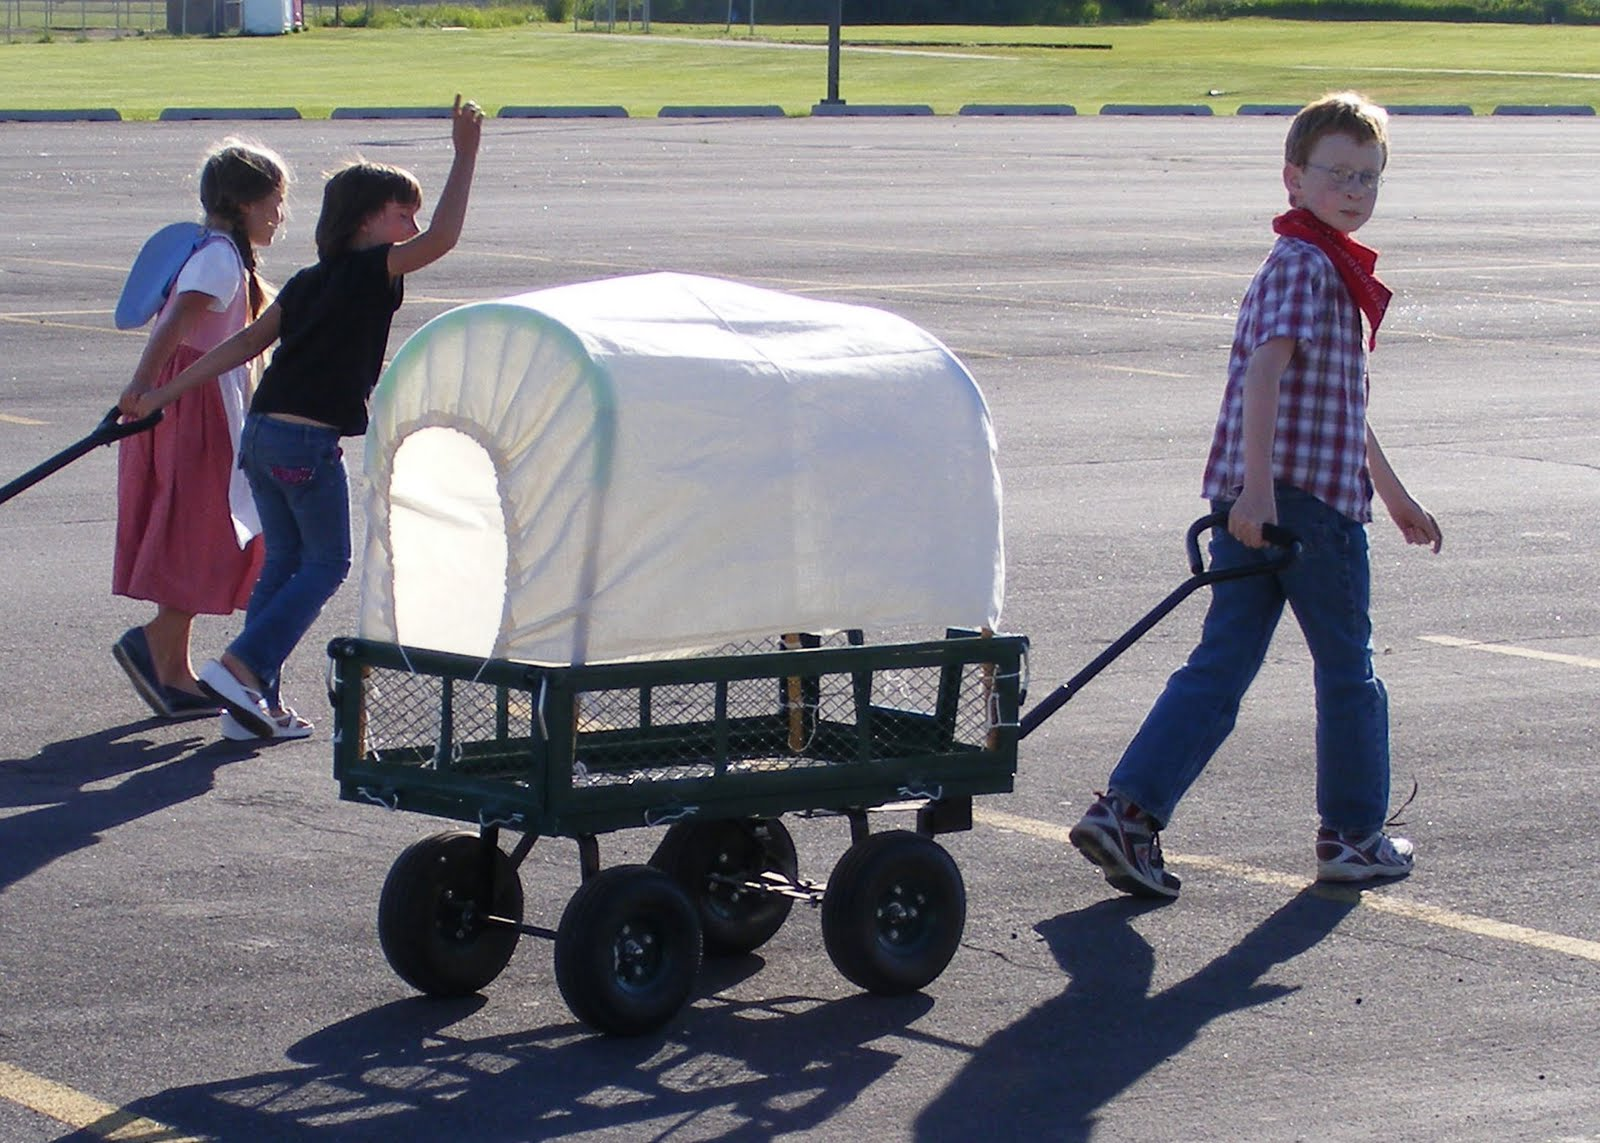 Chasing Paper Dreams: A Boy and His Covered Wagon